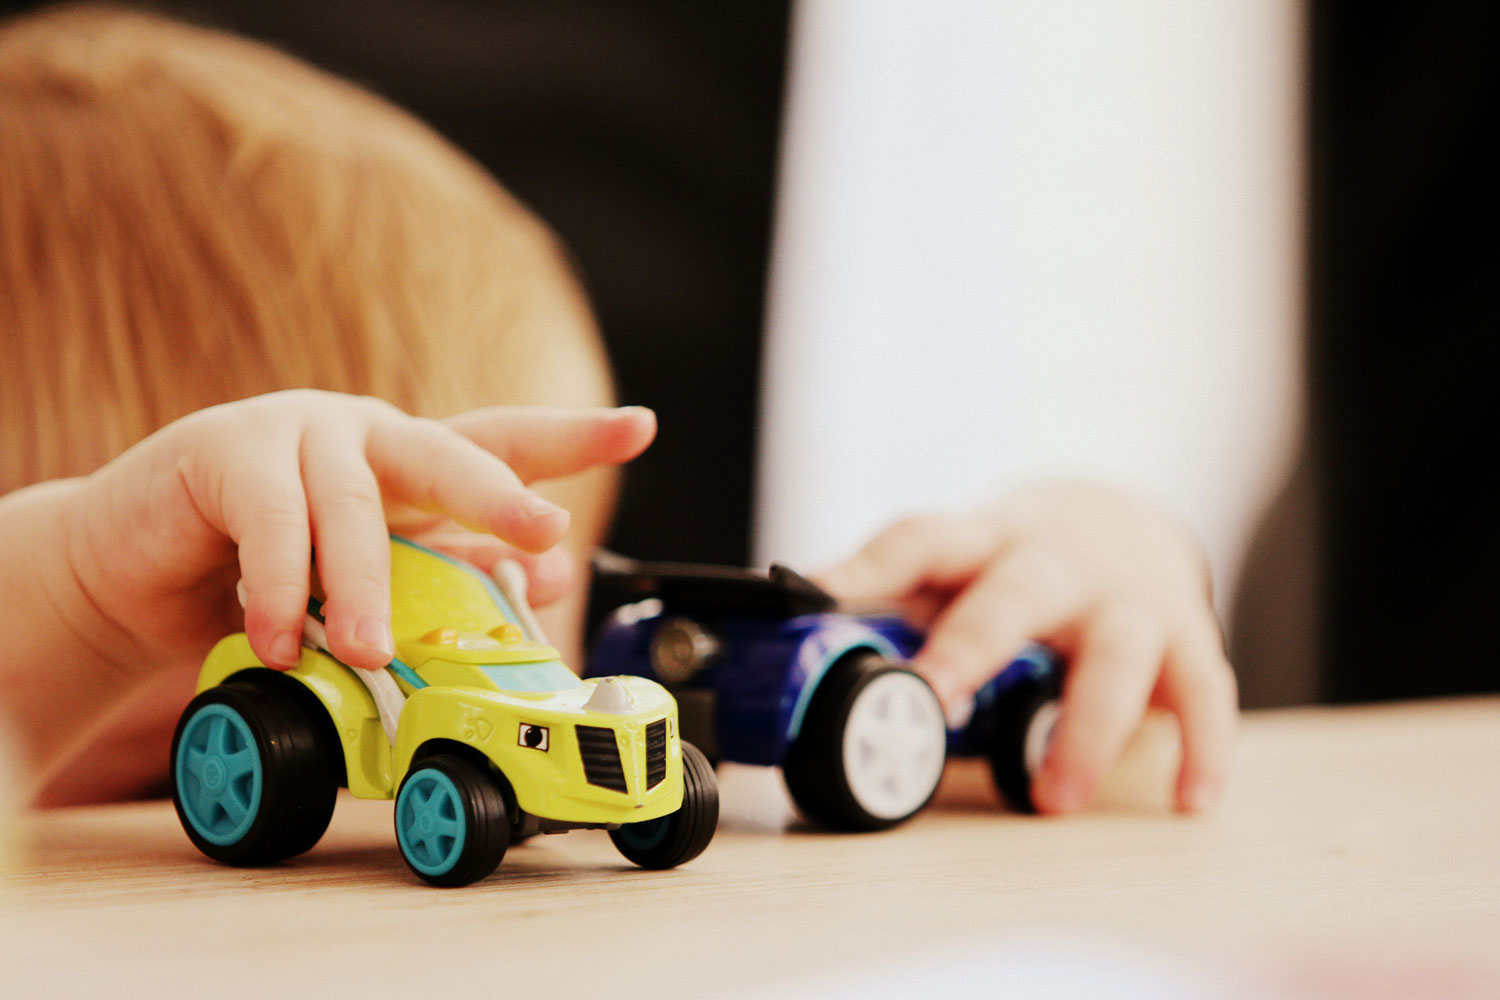 Closeup of a child's hands playing with some toy cars.